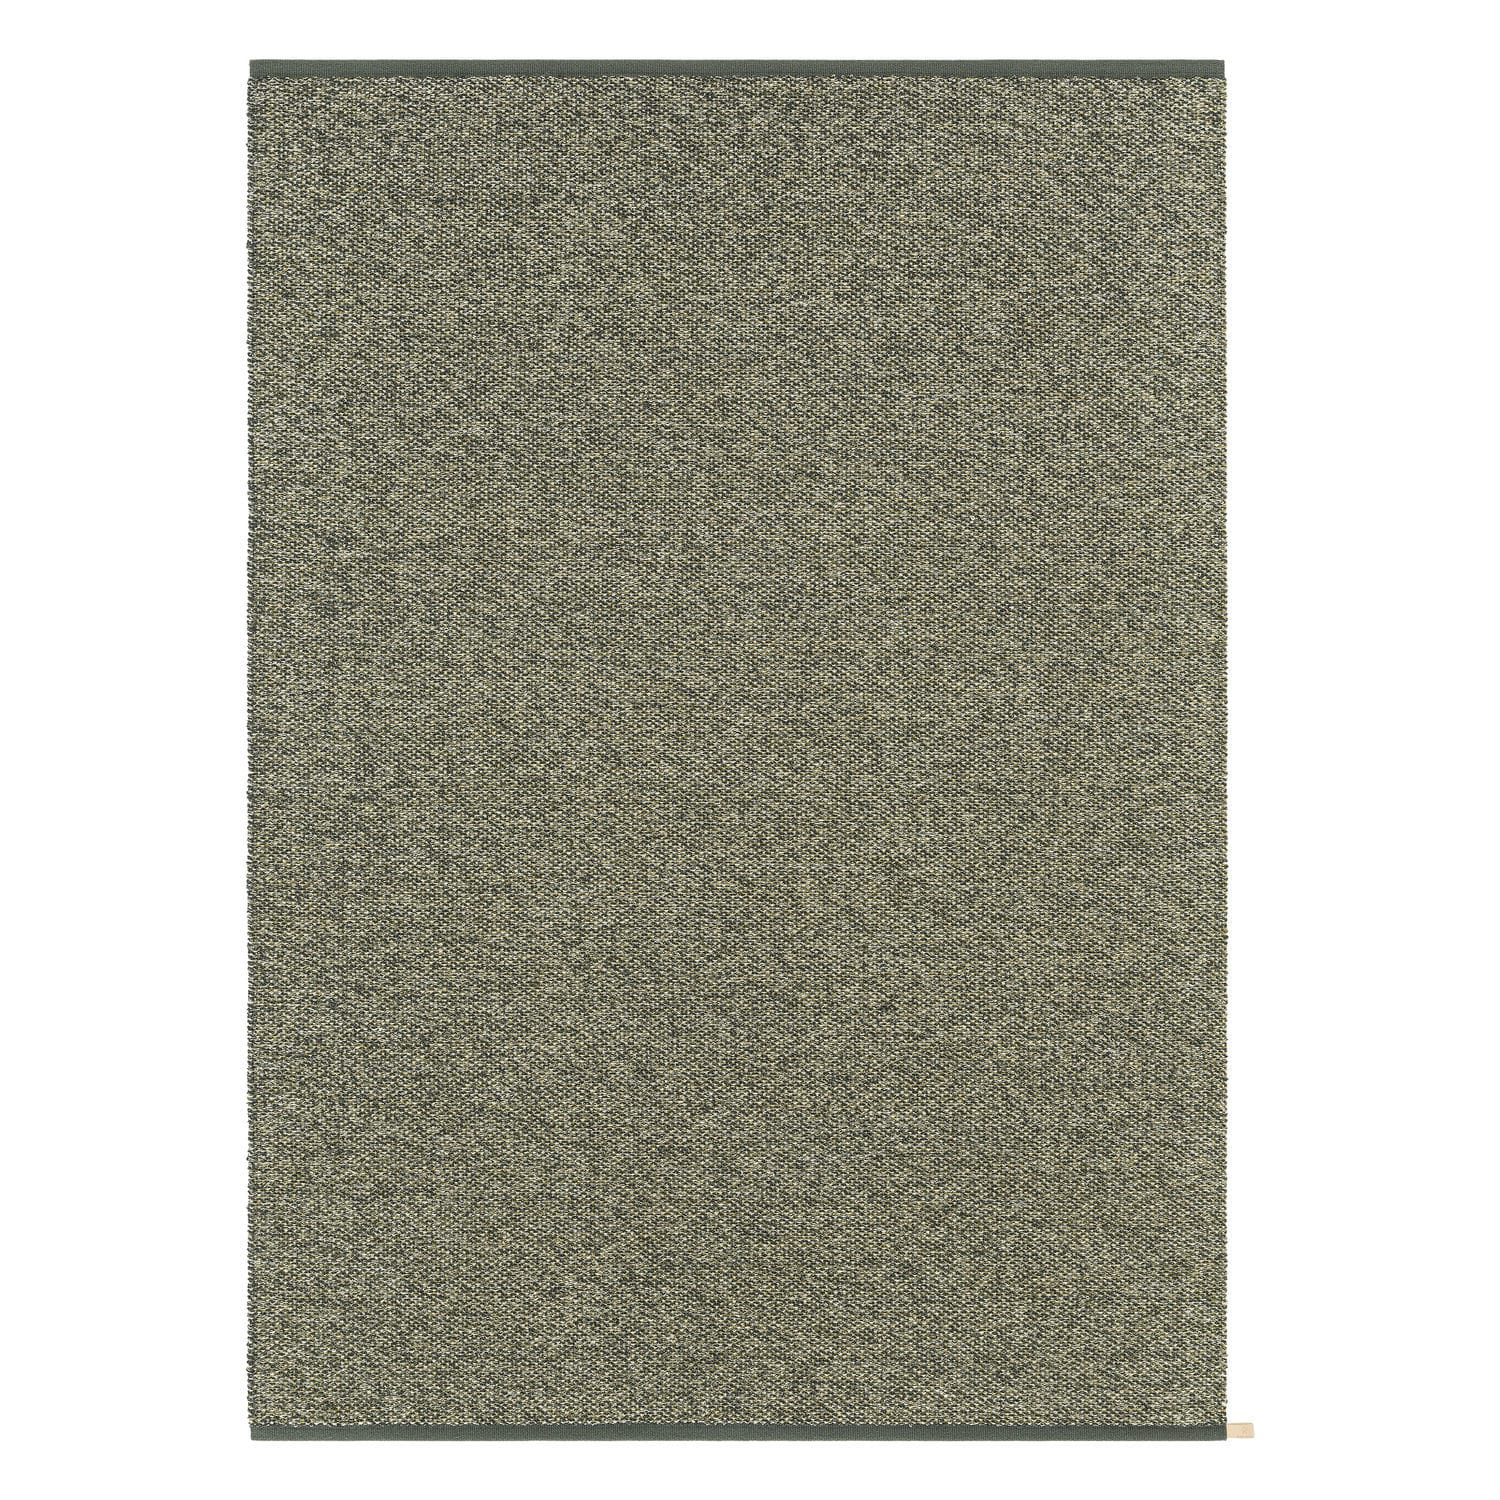 Contemporary Rug Plain Wool Linen Terazzo Kasthall